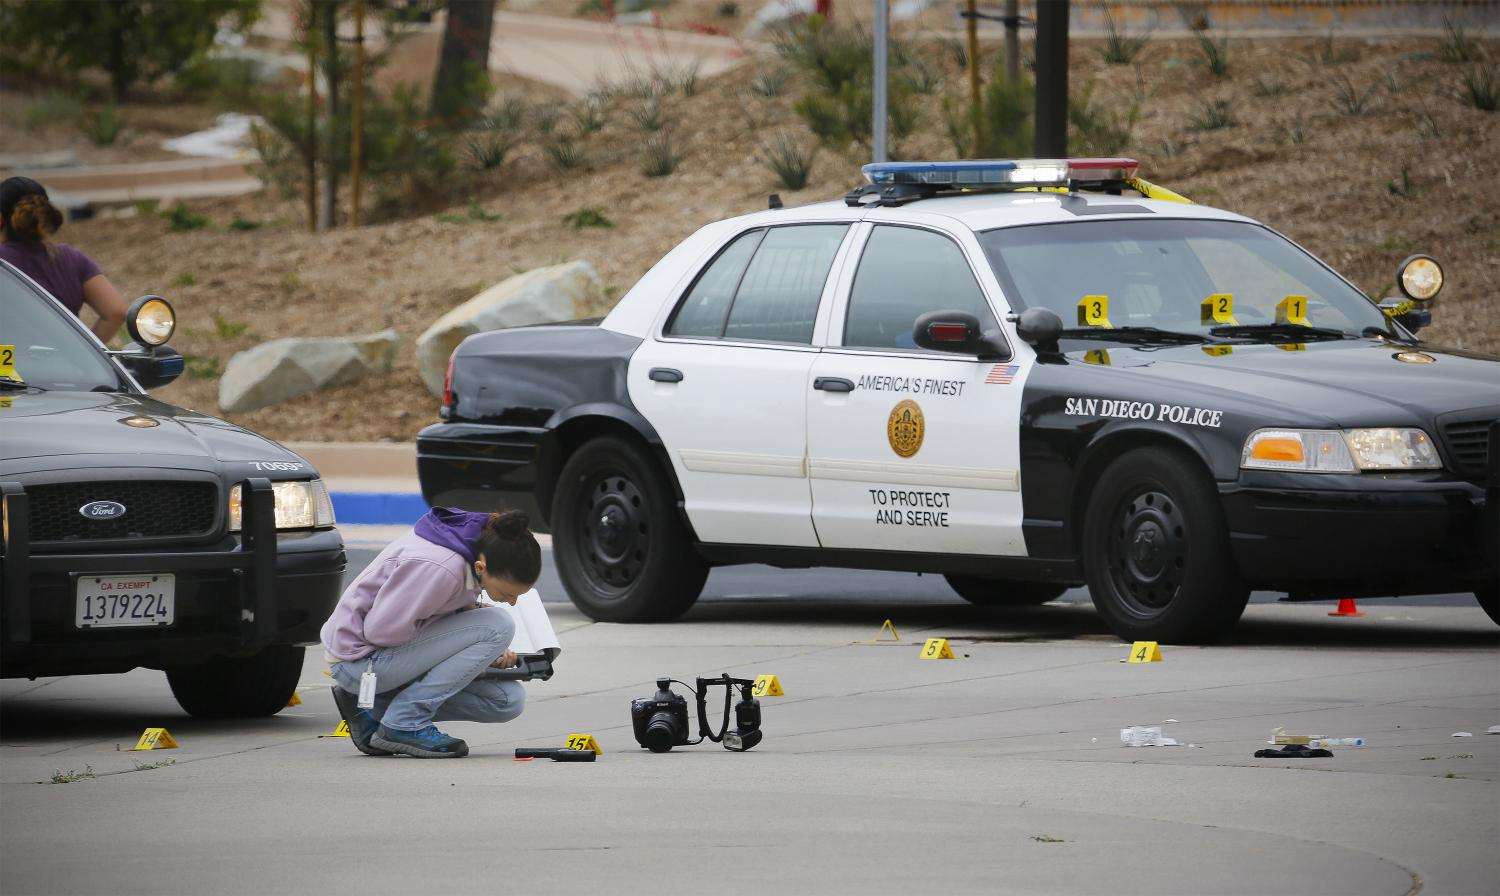 A member of the San Diego Police Department examines what appears to be a gun on the ground at the scene of a fatal police officer involved shooting of a 15-year-old boy in one of the parking lots in front of Torrey Pines High School, early Saturday morning, May 6, 2017, in San Diego, Calif. Police believe the boy called police, and when they arrived pointed a gun at them and didn't follow their commands to drop it. It turns out that the gun is a semi-automatic BB air pistol. (Howard Lipin/San Diego Union-Tribune/TNS)